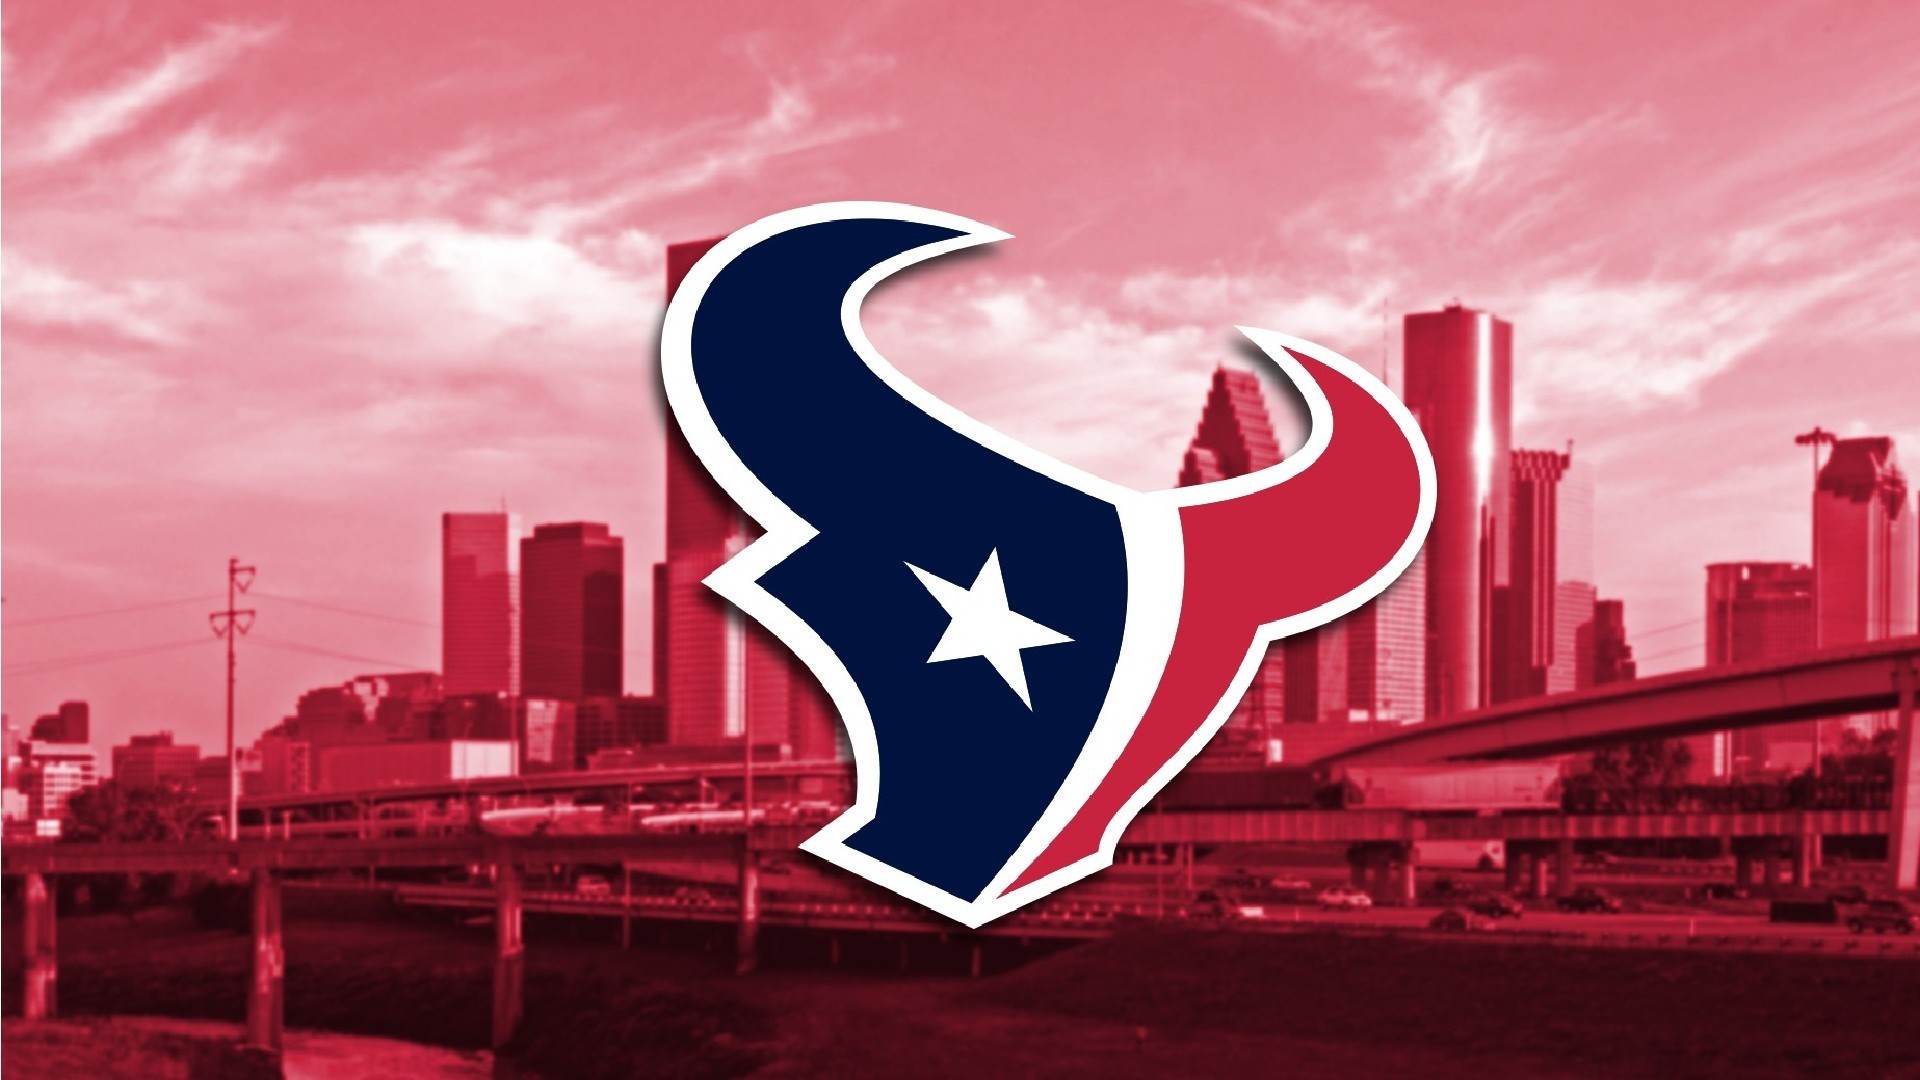 Houston Texans Wallpaper Images (76+ images)